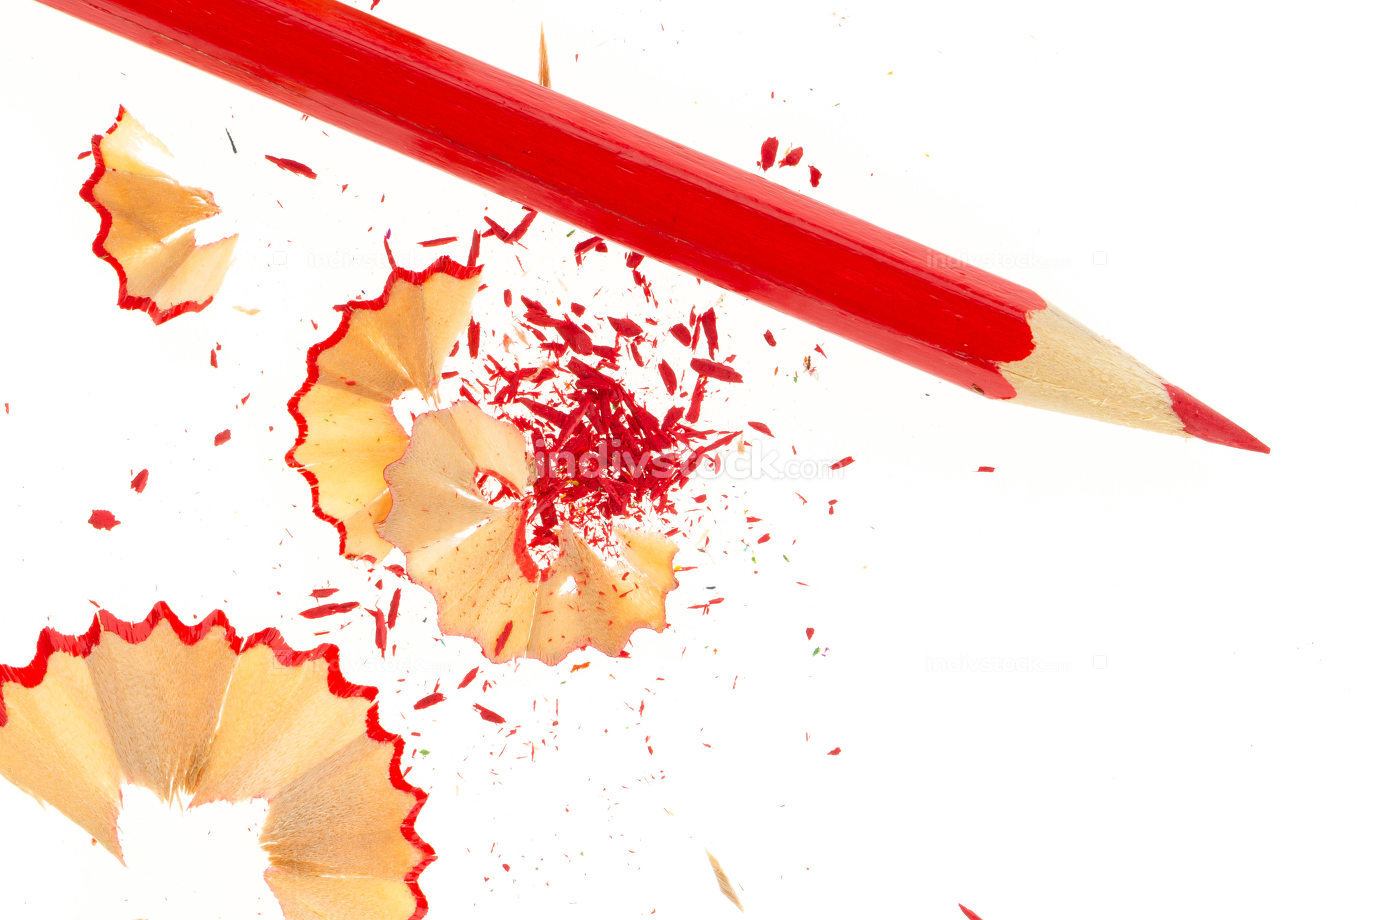 Red pencil and wood shavings